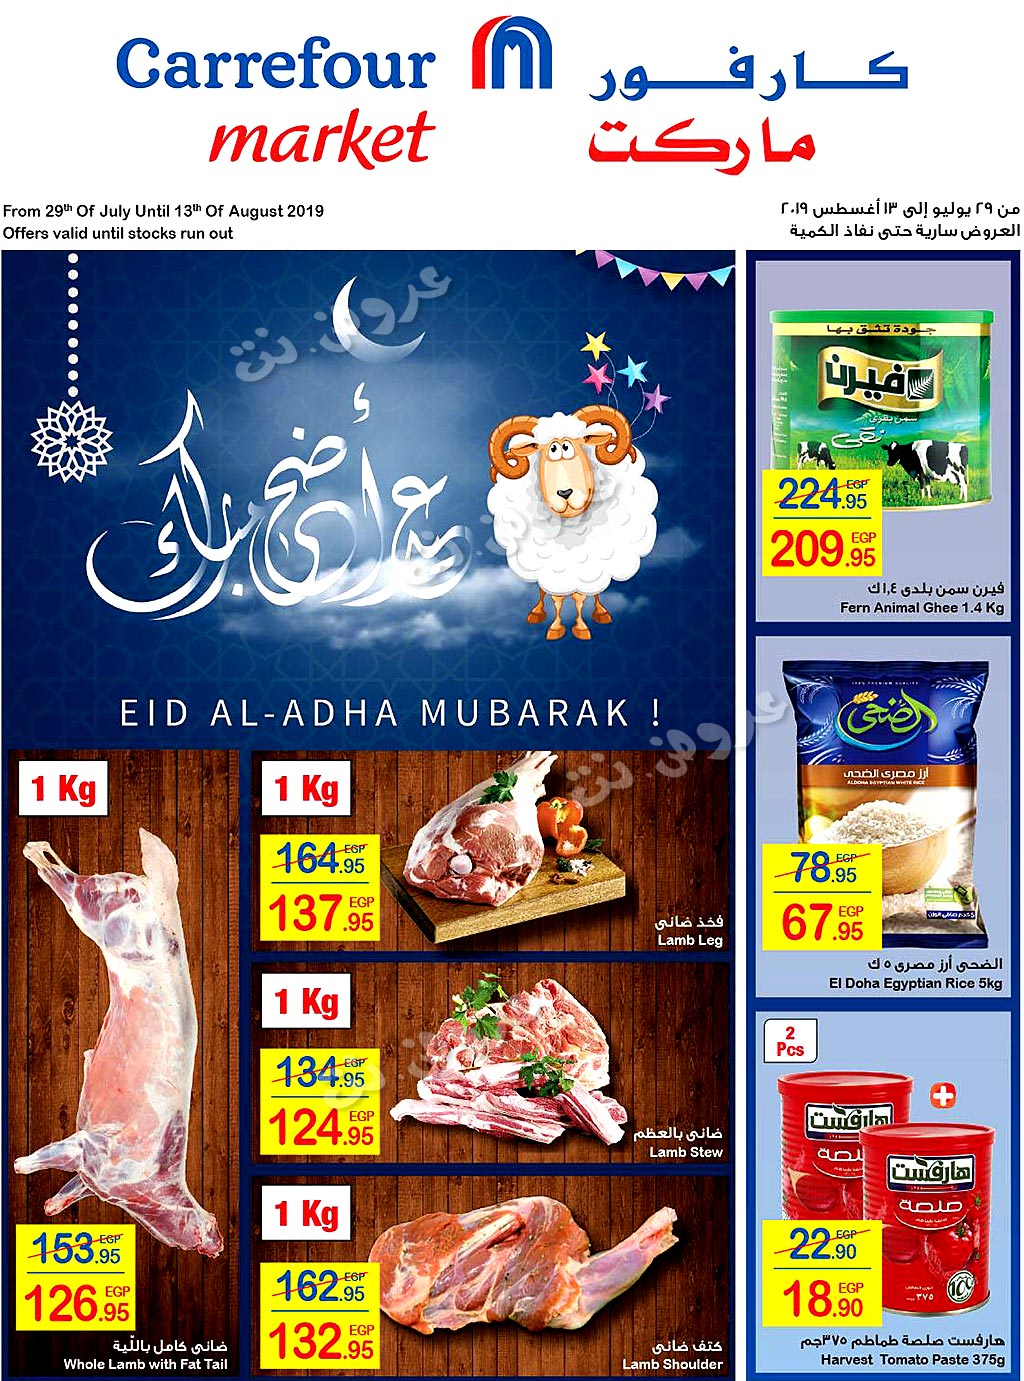 carrefour-market offers from 29july to 14aug 2019 page number 1 عروض كارفور ماركت من 29 يوليو حتى 14 أغسطس 2019 صفحة رقم 1